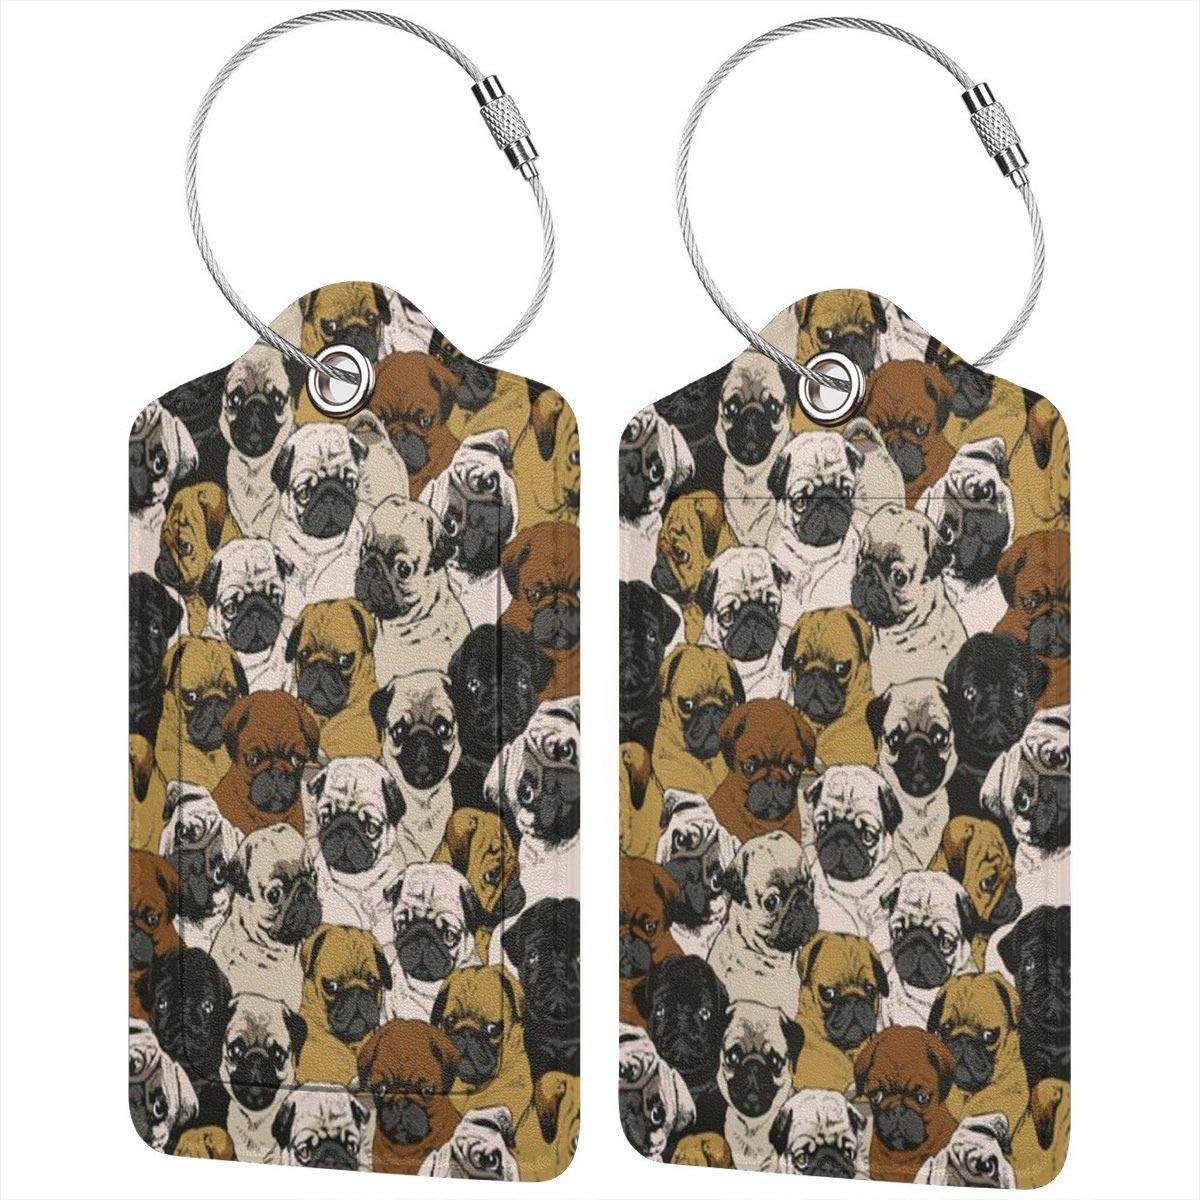 Dog Yoga Luggage Tags With Full Back Privacy Cover W//Steel Loops